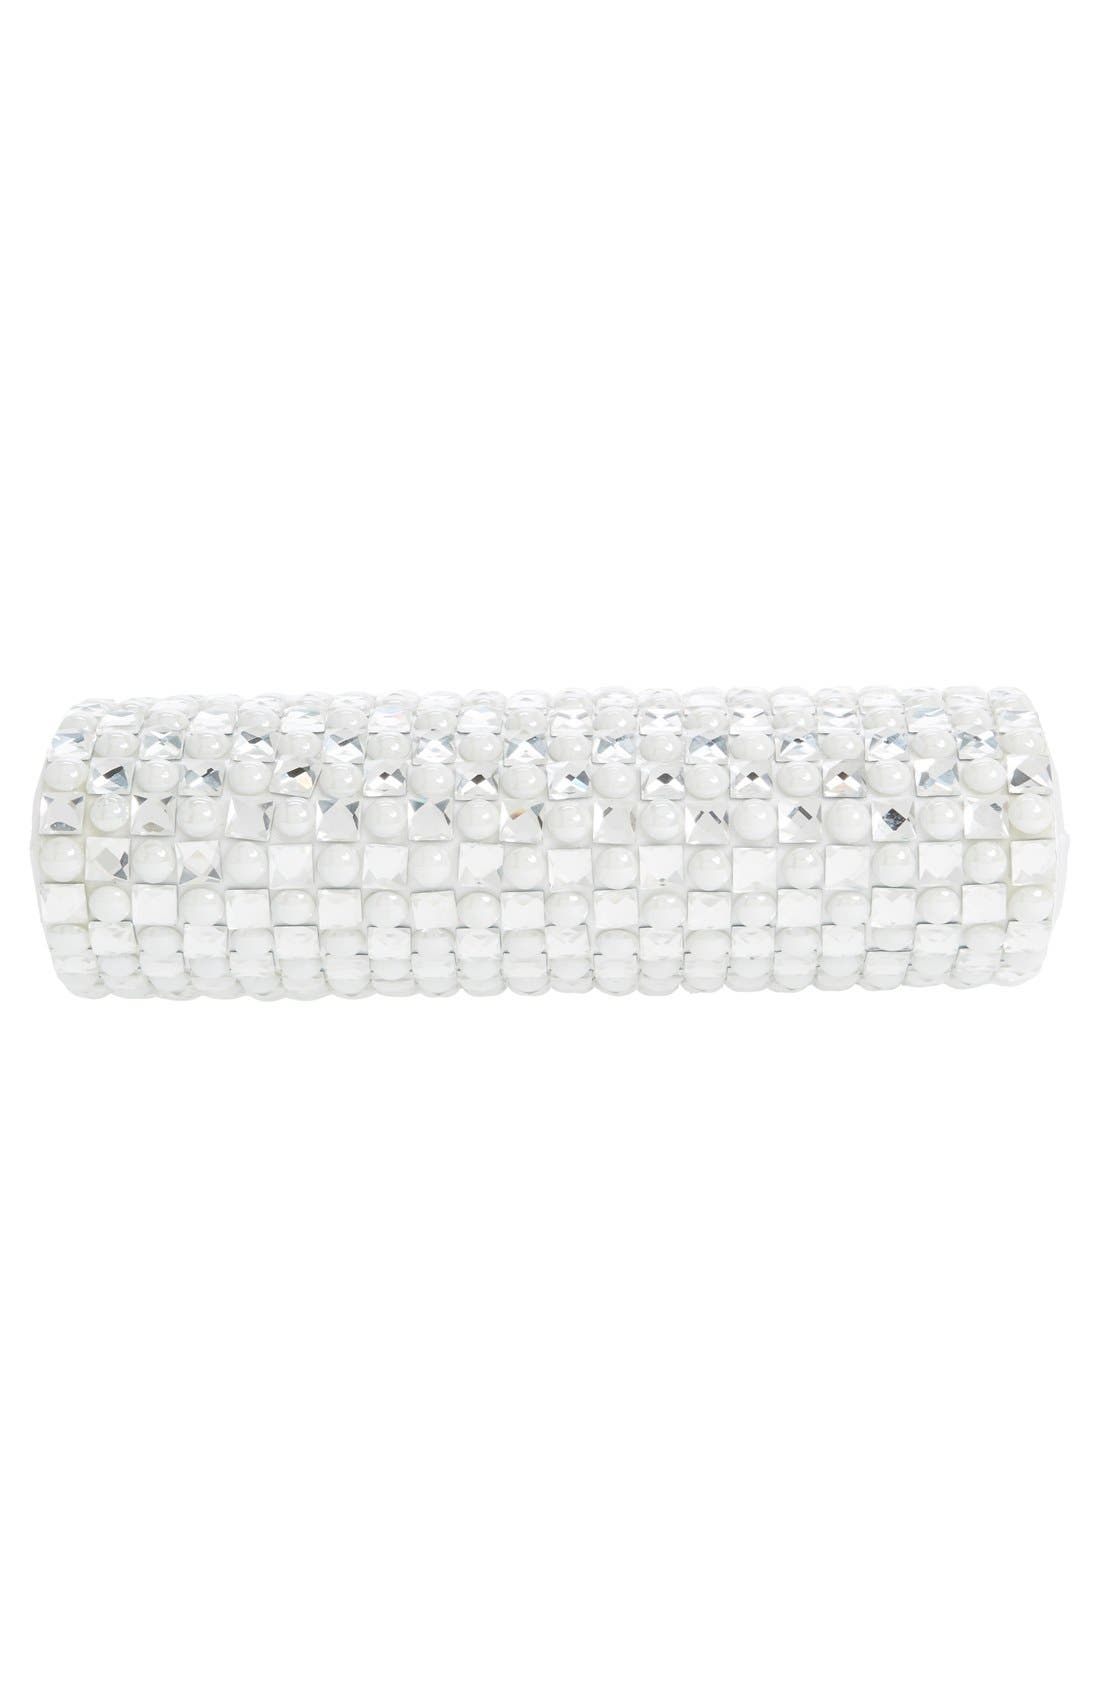 Crystal Clutch,                             Alternate thumbnail 6, color,                             Silver/White